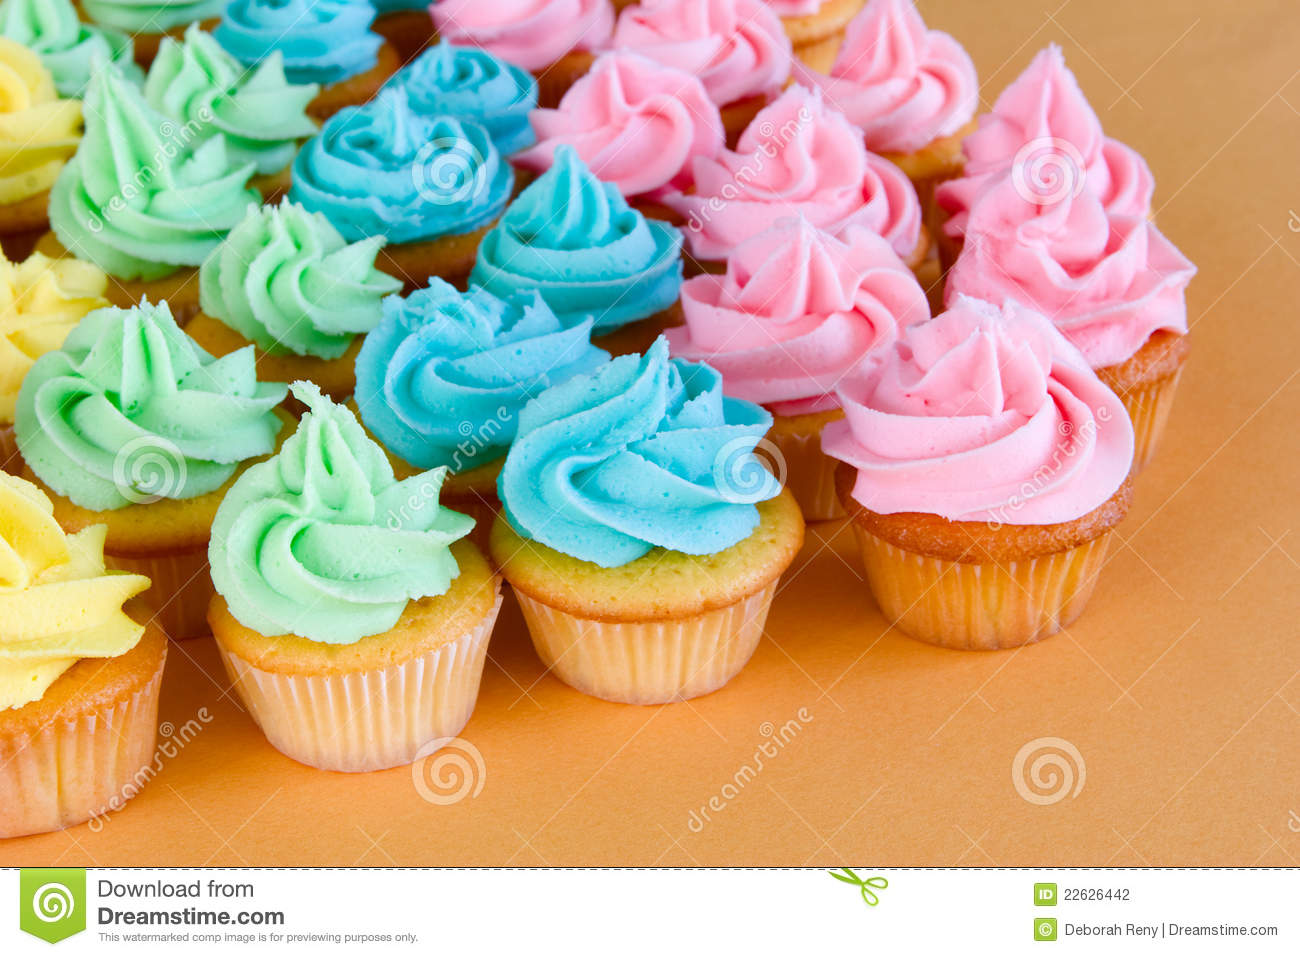 Lots of rainbow cupcakes stock photo. Image of festive ...